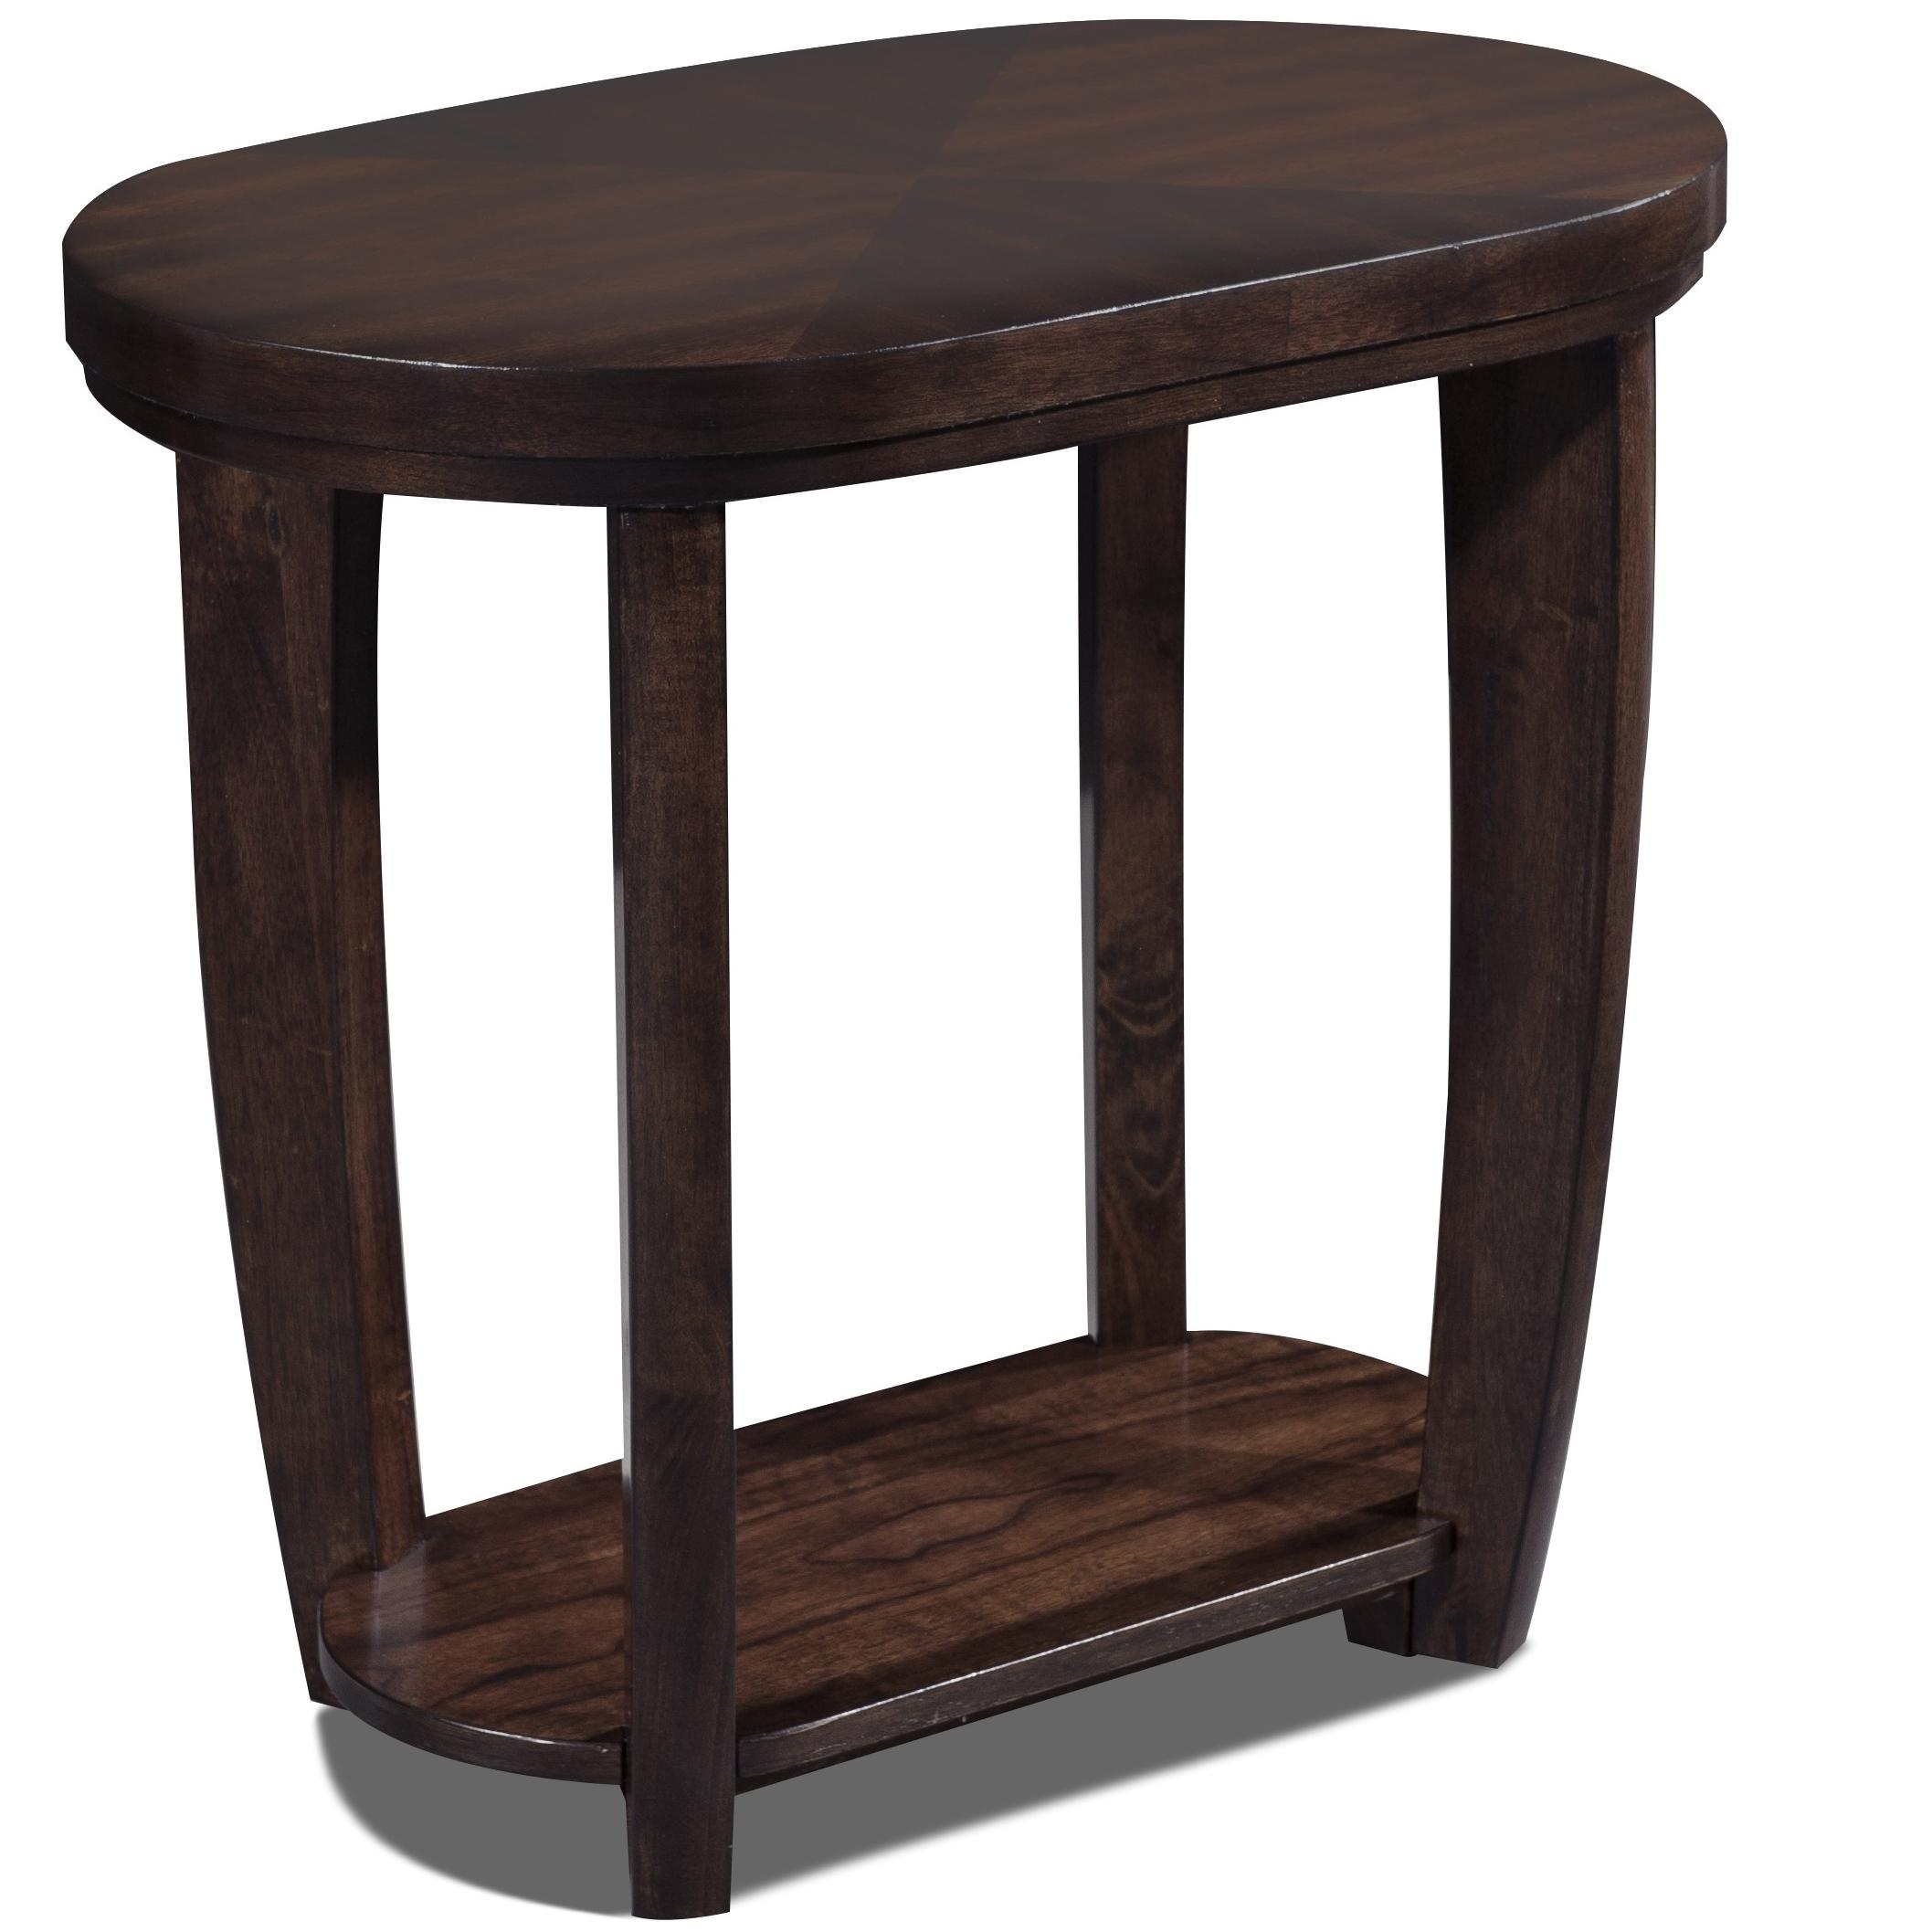 Klaussner International Hayden  Chairside Table - Item Number: 764-810 ETBL